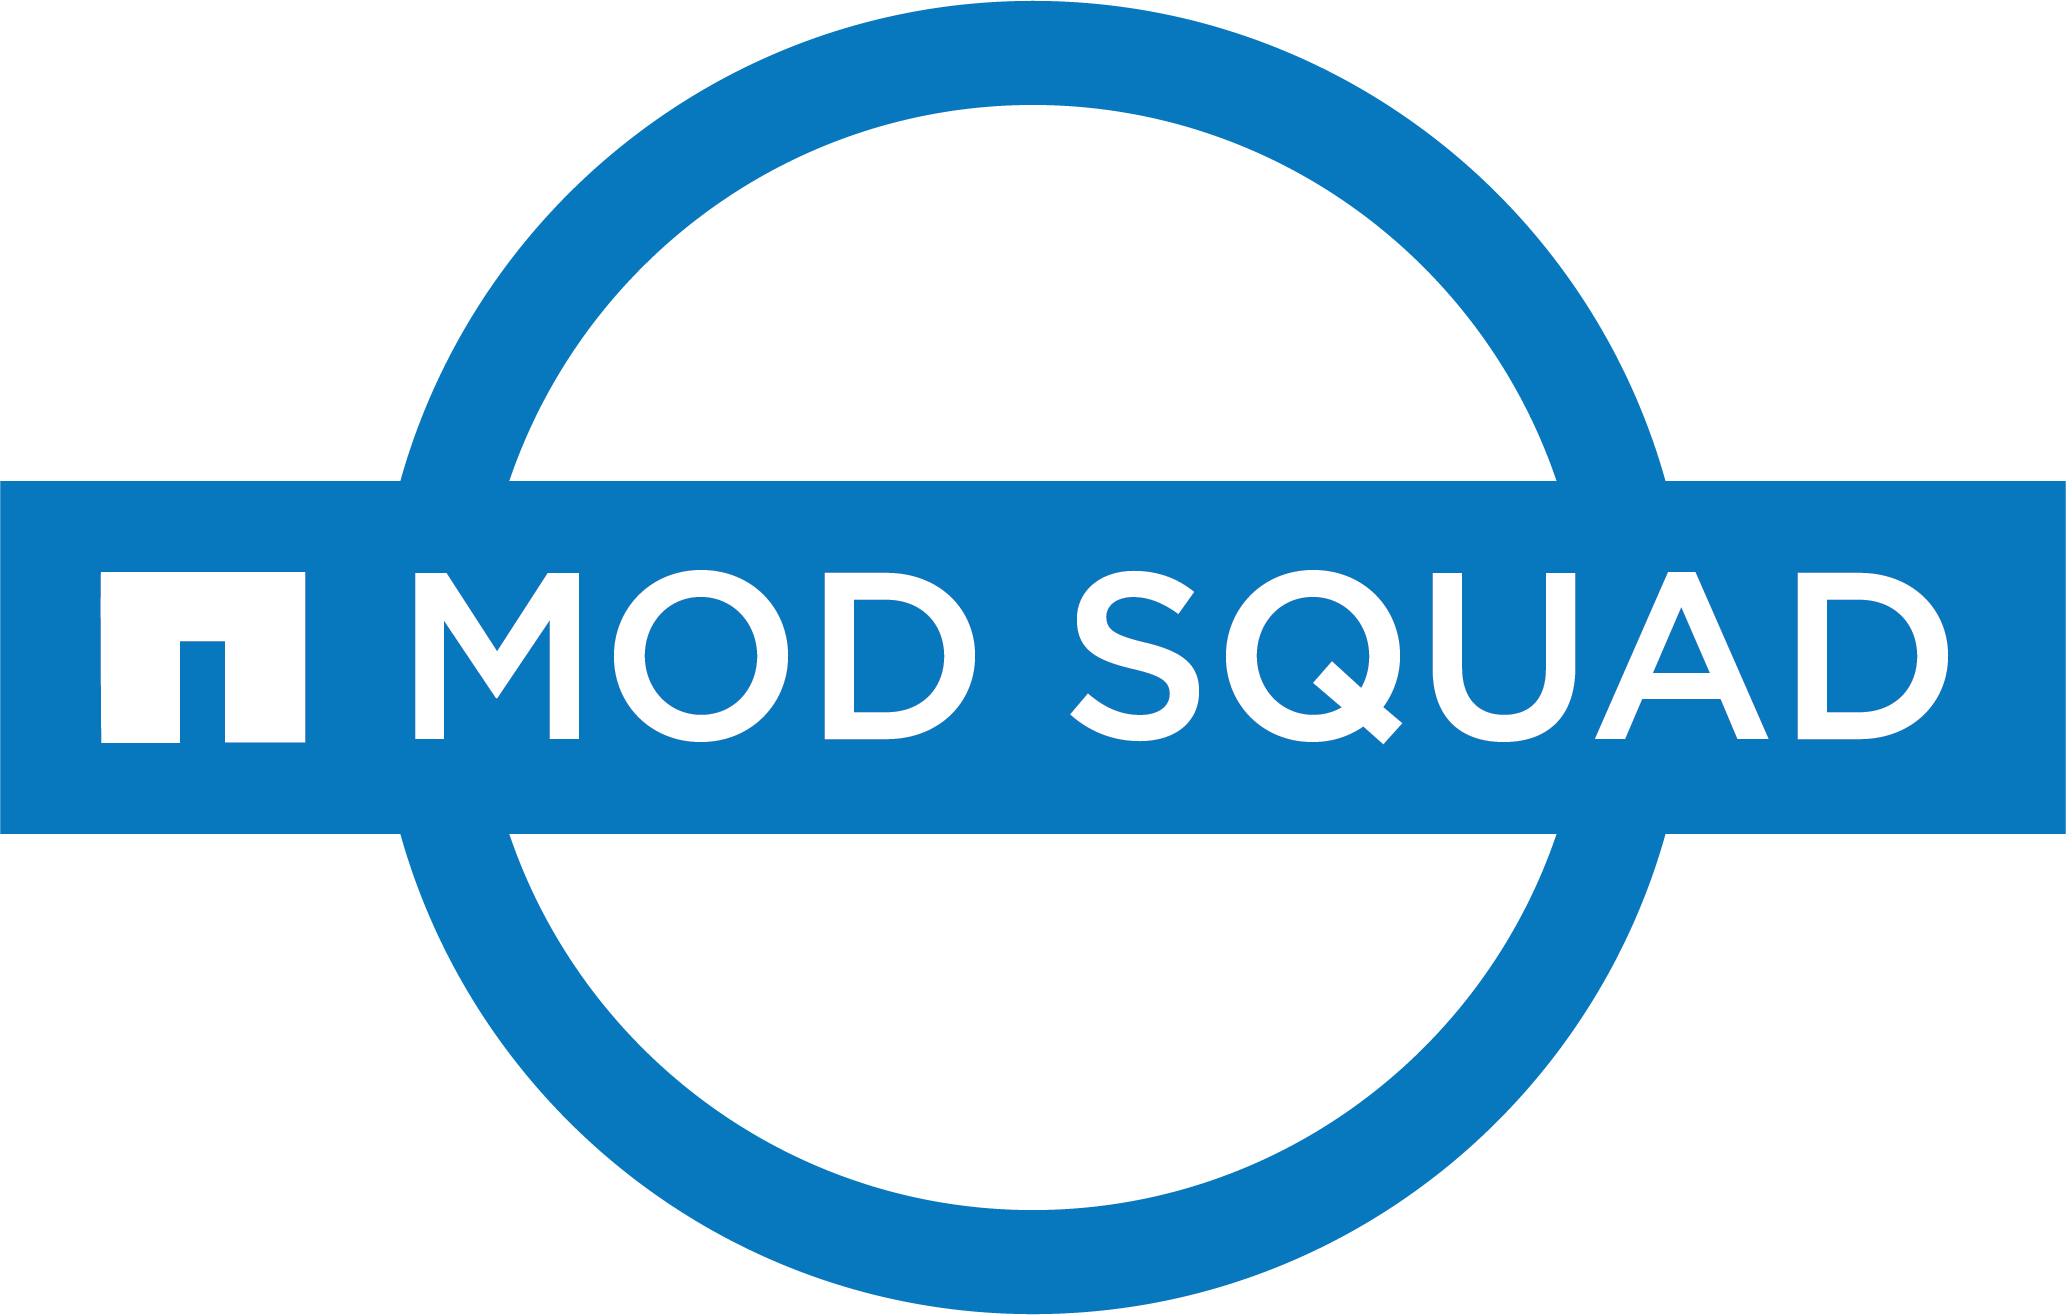 Final_Mod_Squad_Mark.png